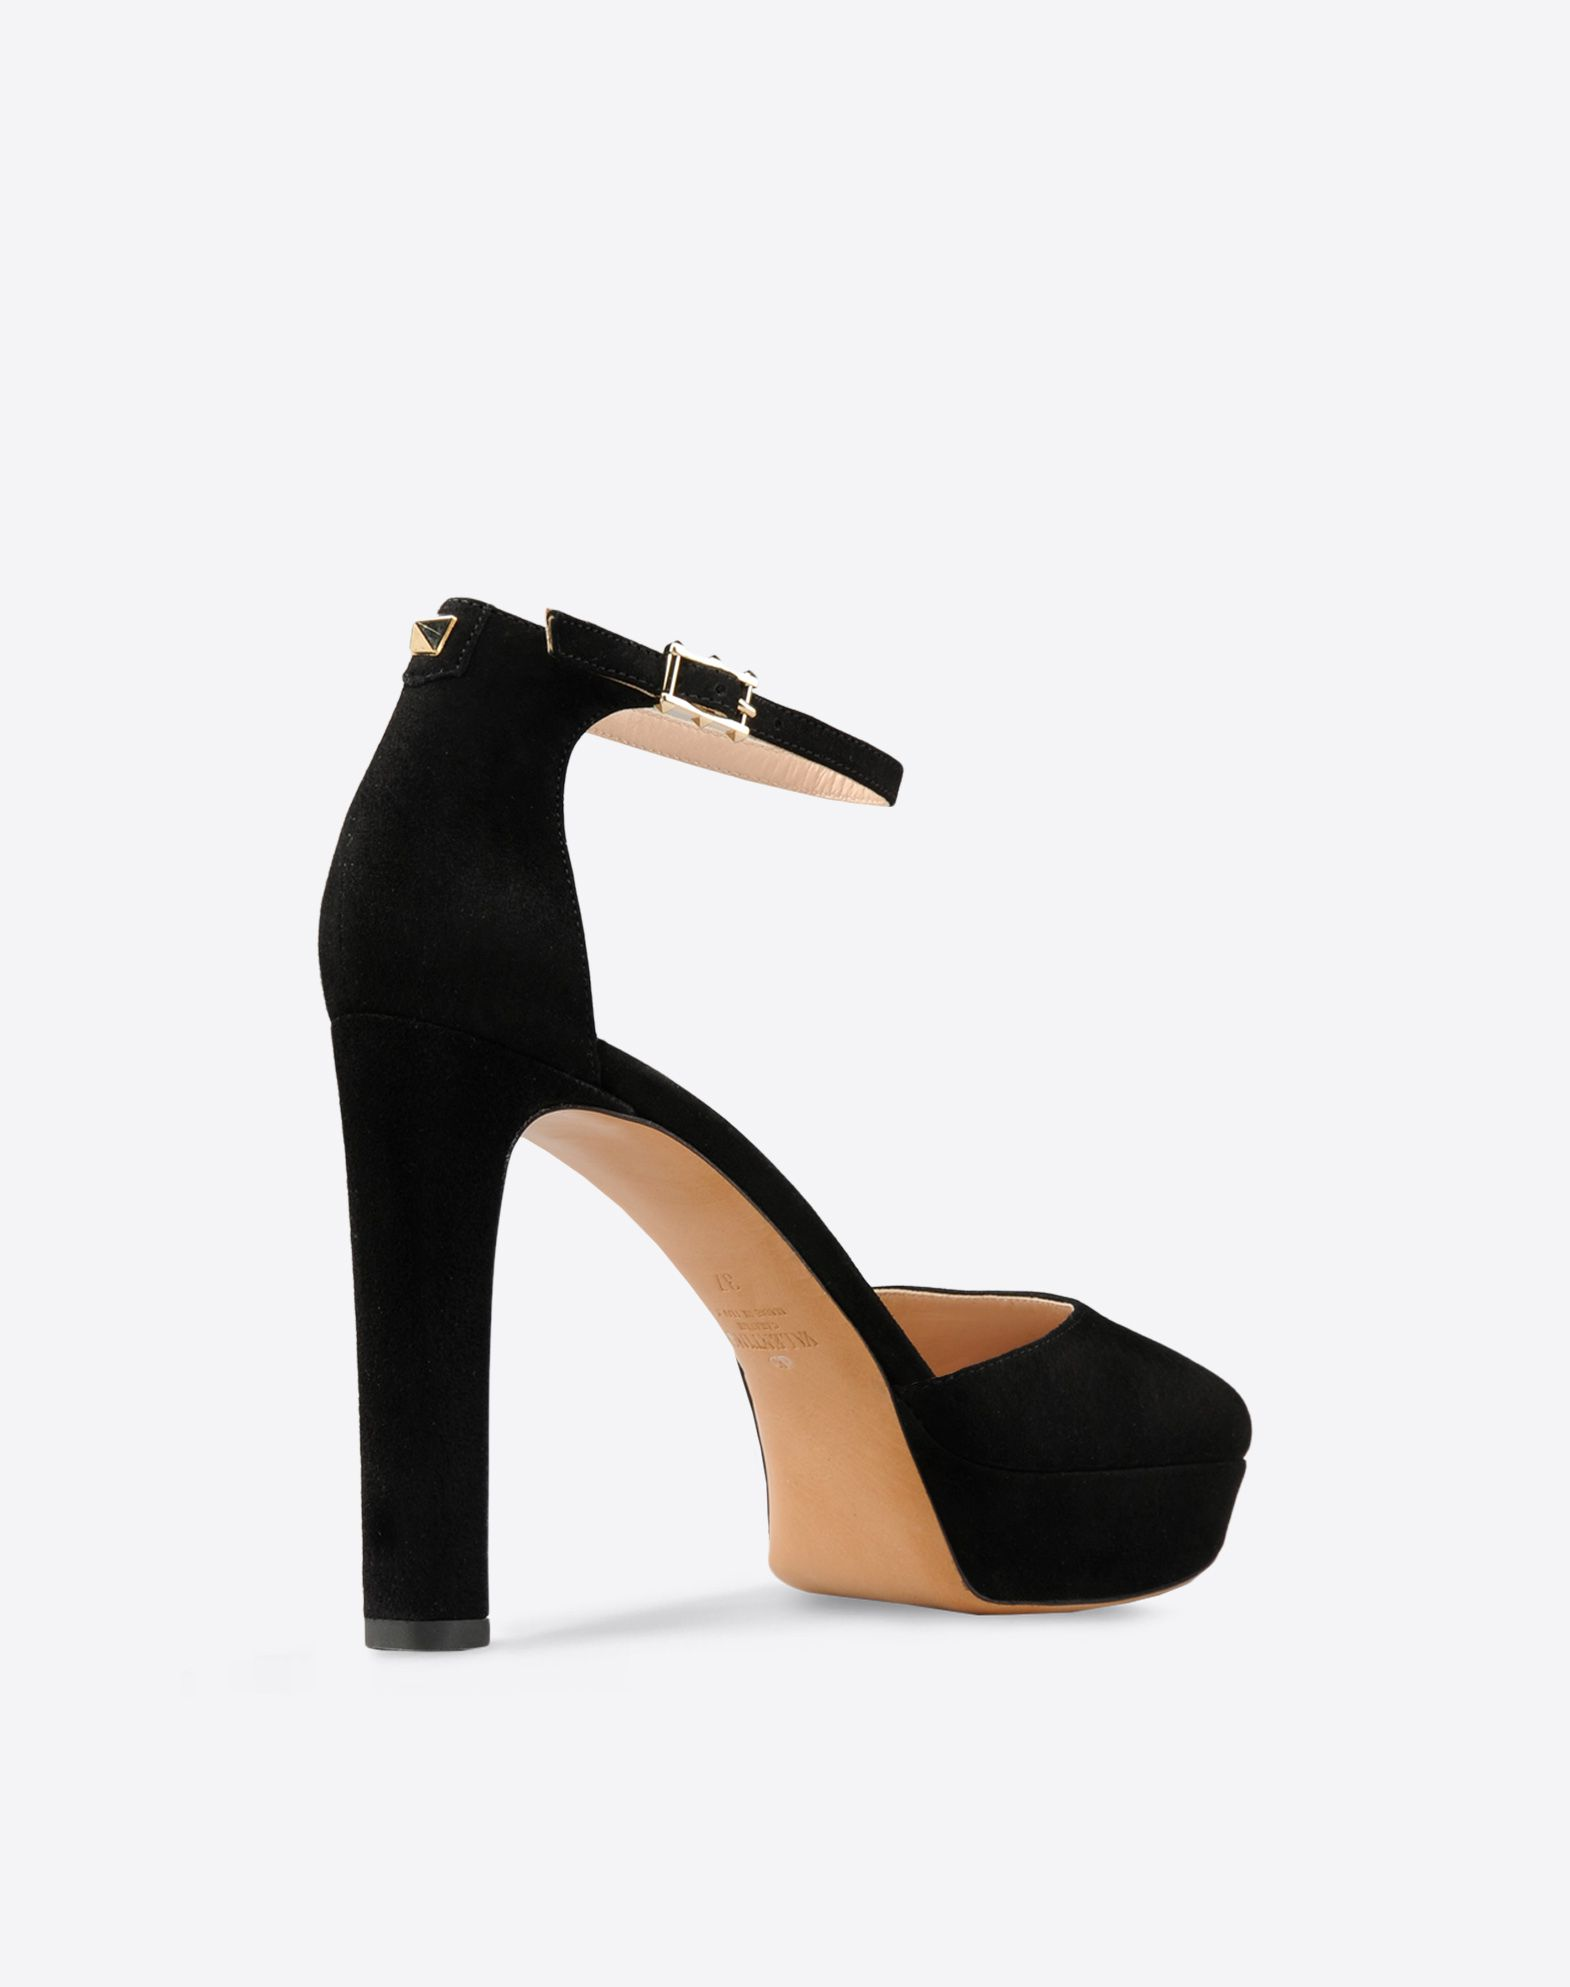 VALENTINO Metal Applications Sueded Solid color Side buckle closure Leather sole Round toeline Covered heel  44682185gk